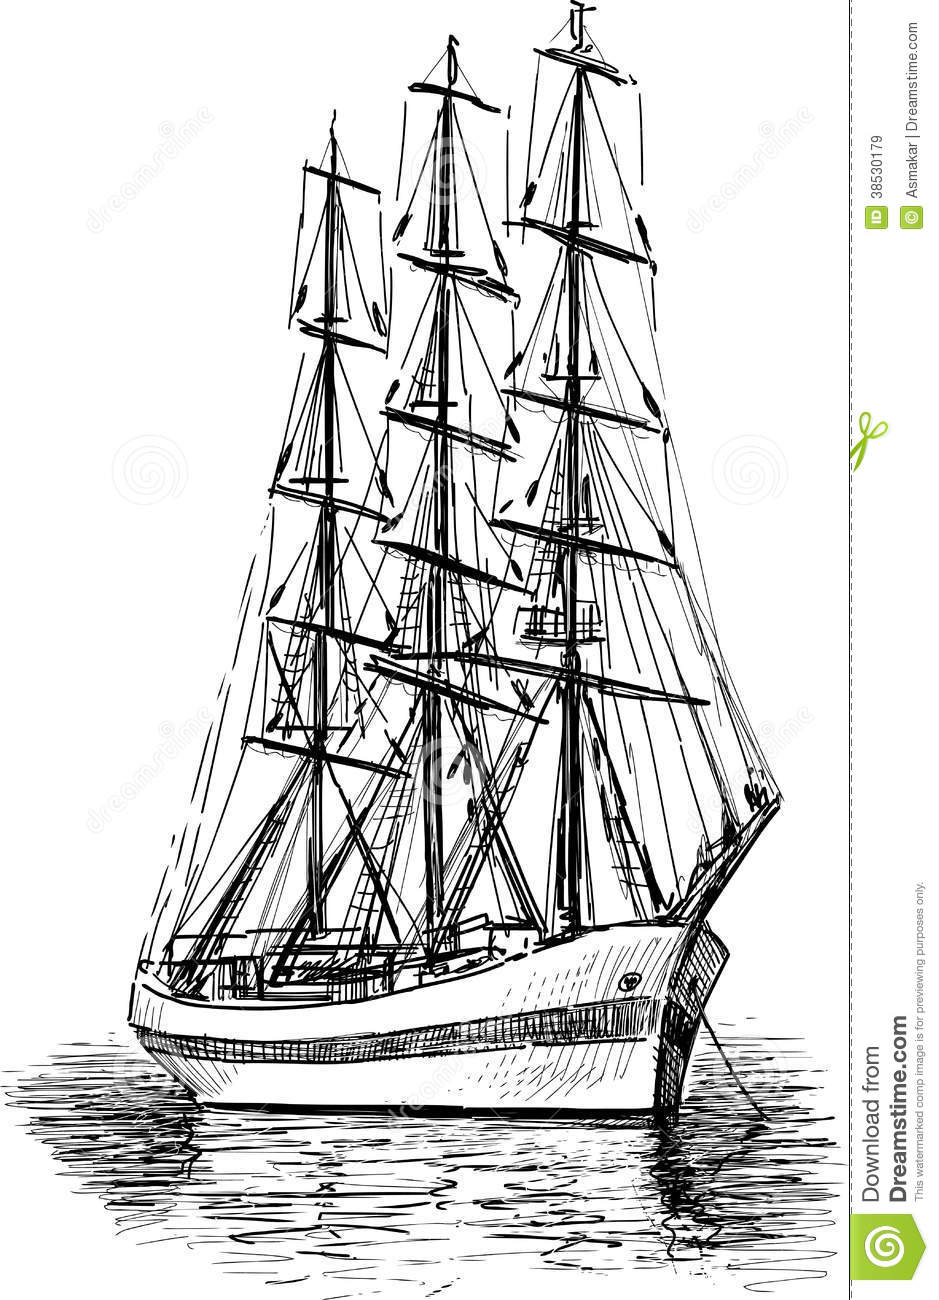 Sailing Ship Royalty Free Stock Images - Image: 38530179